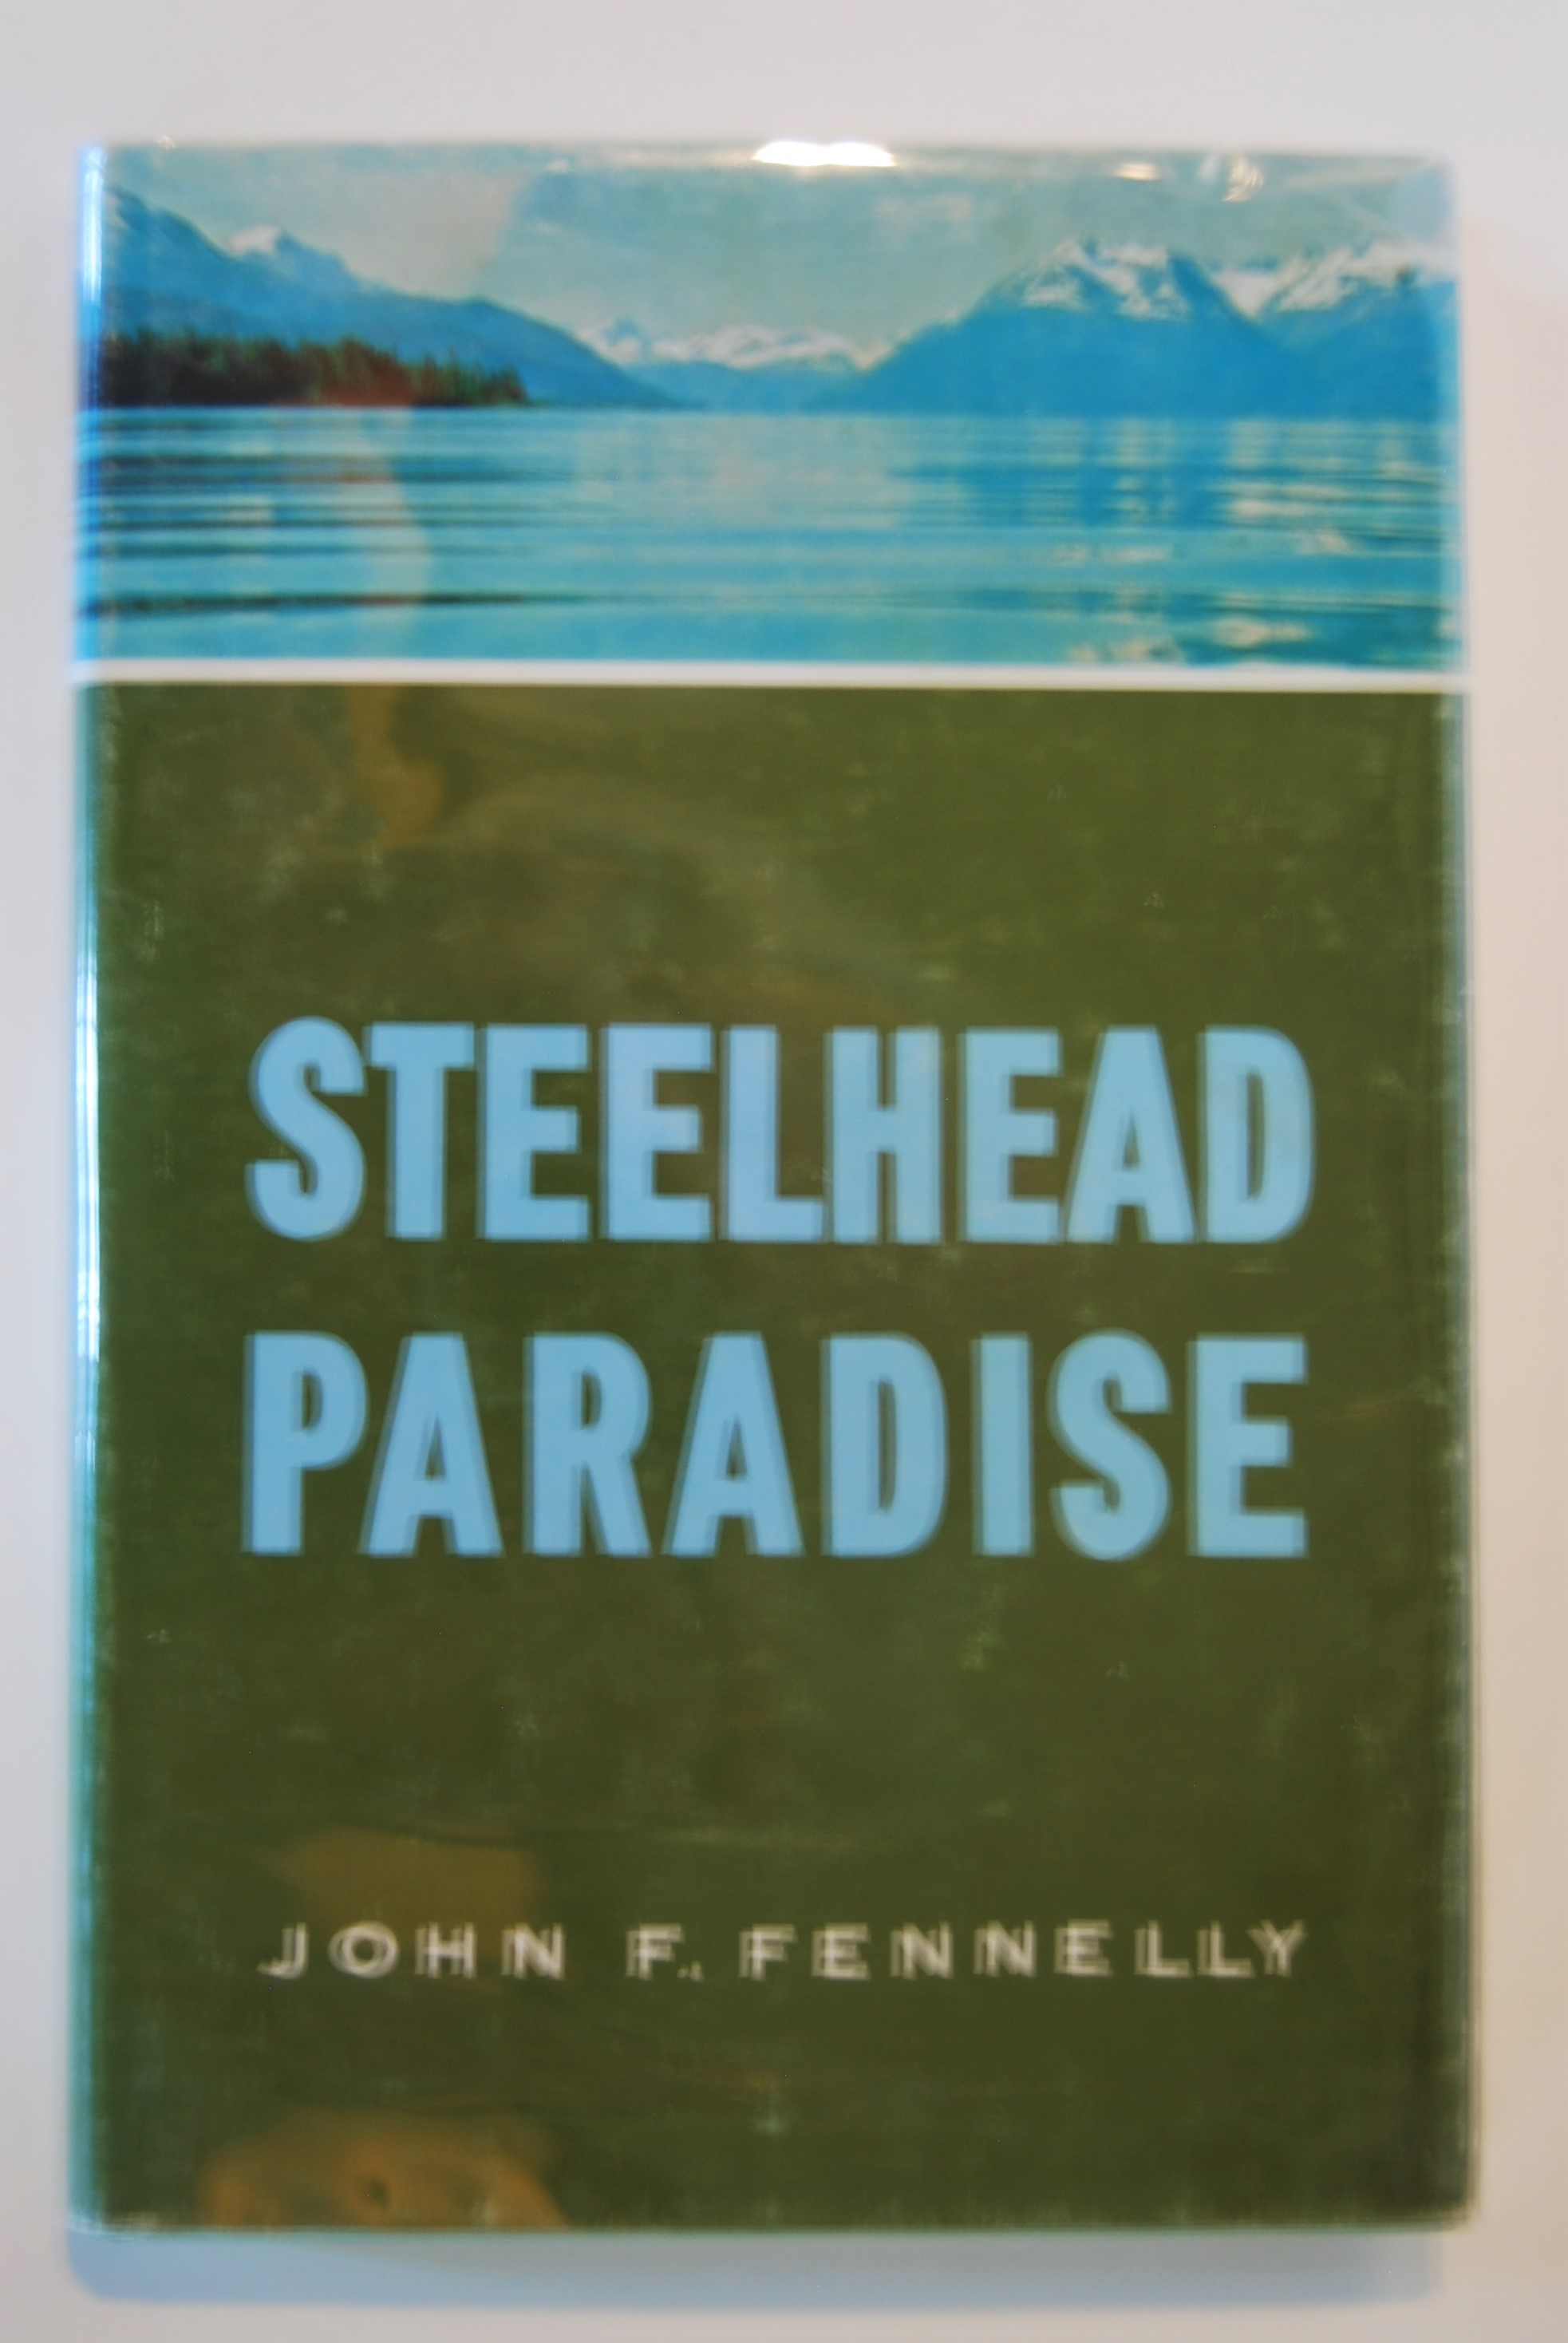 Image for STEELHEAD PARADISE. 8vo illus. Vancouver: Mitchell Press, Ltd. 114 p. 1970 2nd Printing  [1963]